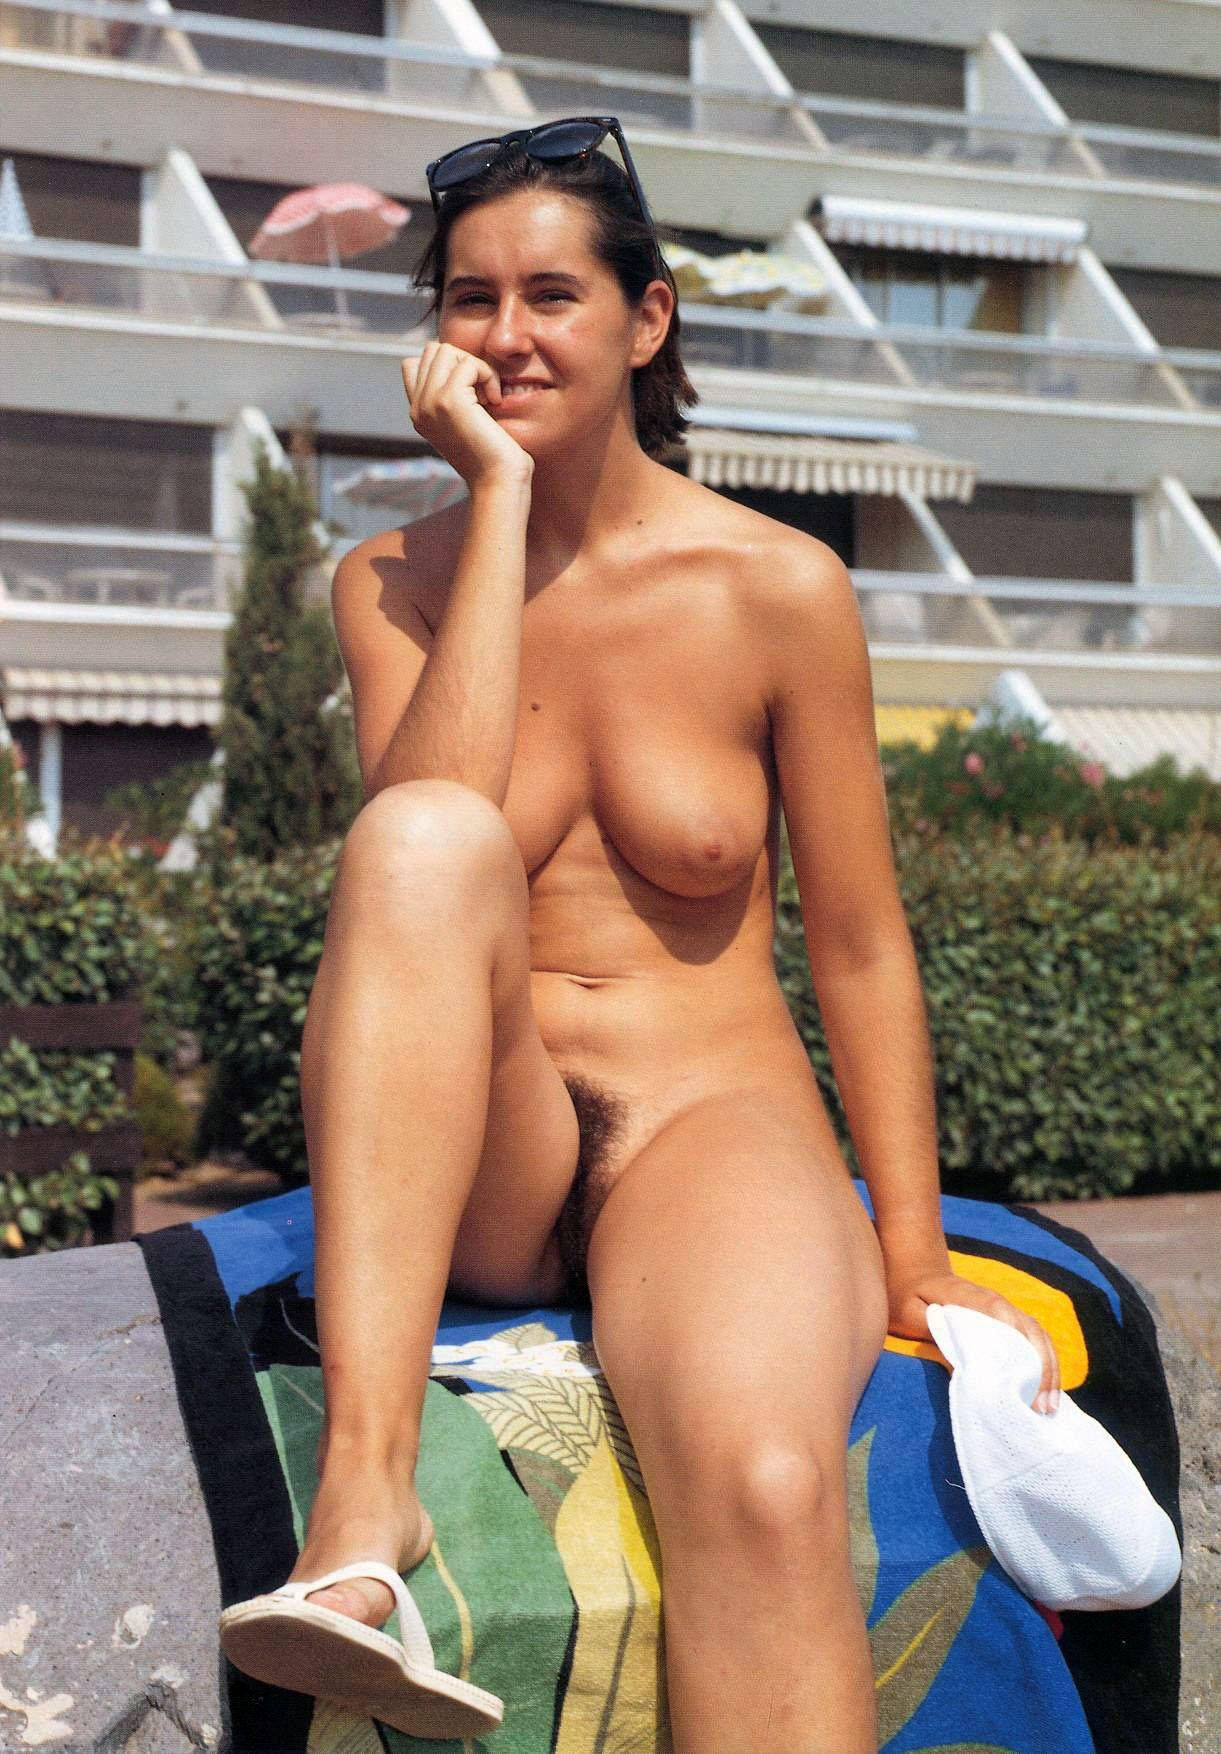 Best Of Nude Beaches  Cccc  Pinterest  Nude-1996